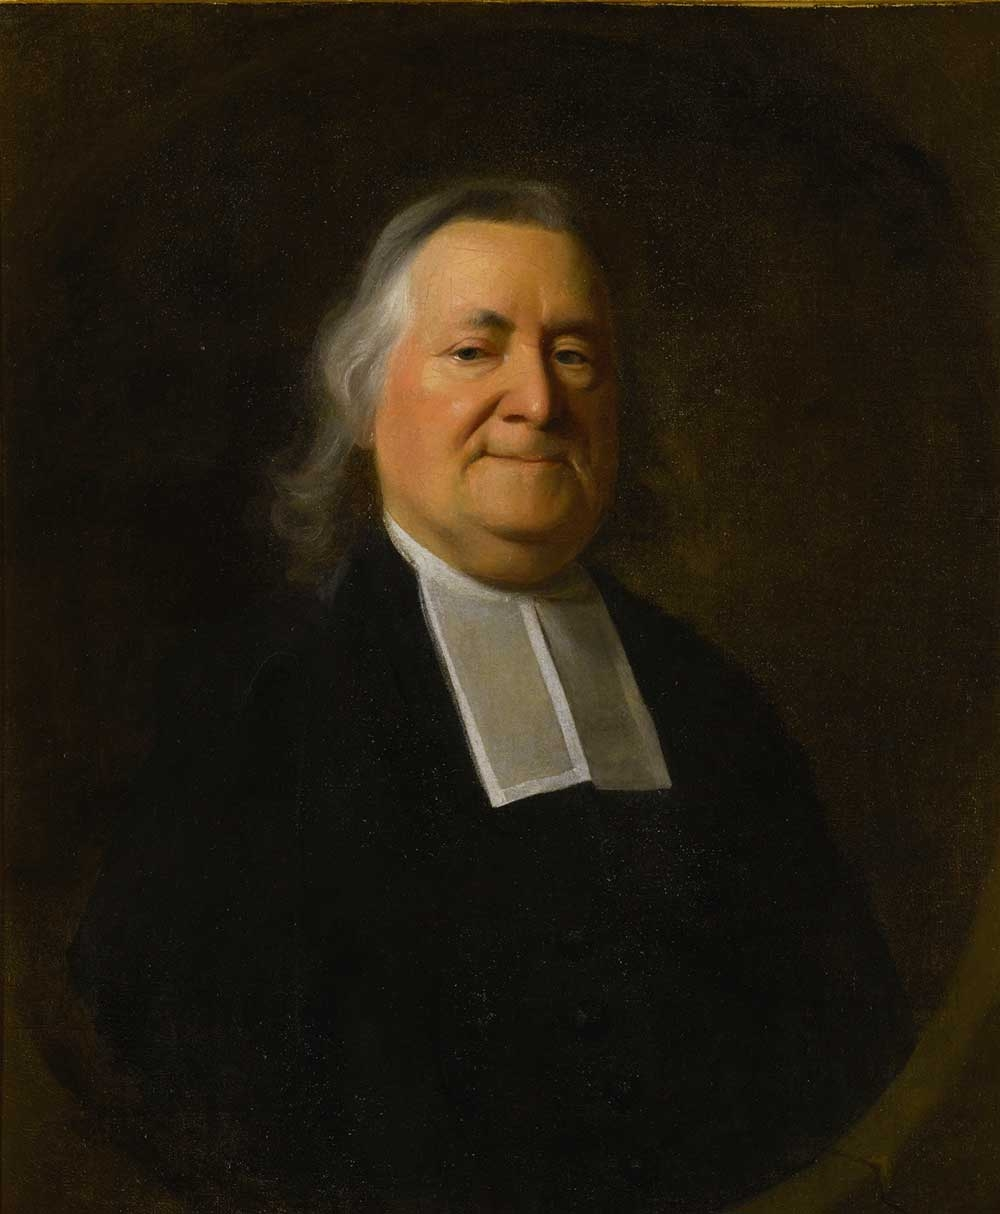 John Singleton Copley, Reverend Joseph Sewall, c. 1766, oil on canvas, 30 by 25 inches